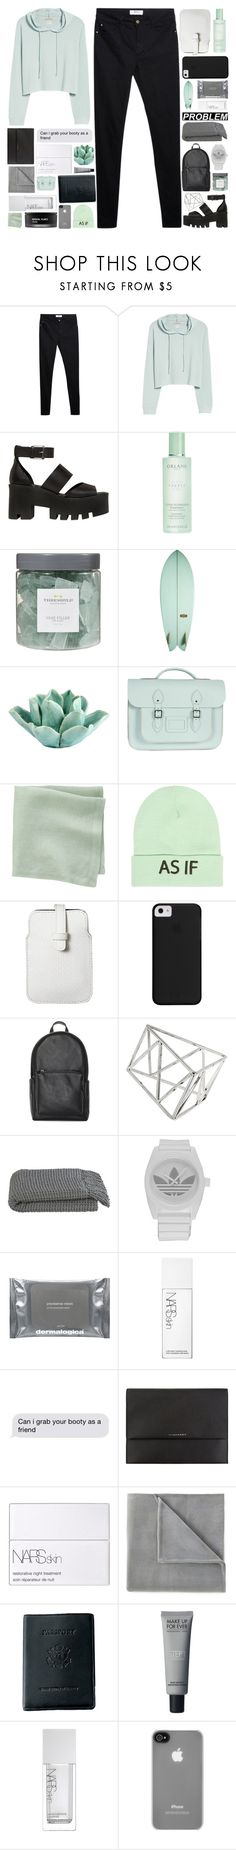 """too many that i can't even count them"" by untake-n ❤ liked on Polyvore featuring MANGO, Cotton Emporium, Windsor Smith, Orlane, Threshold, Almond Surfboards, HomArt, Bohemia, CB2 and Wet Seal"